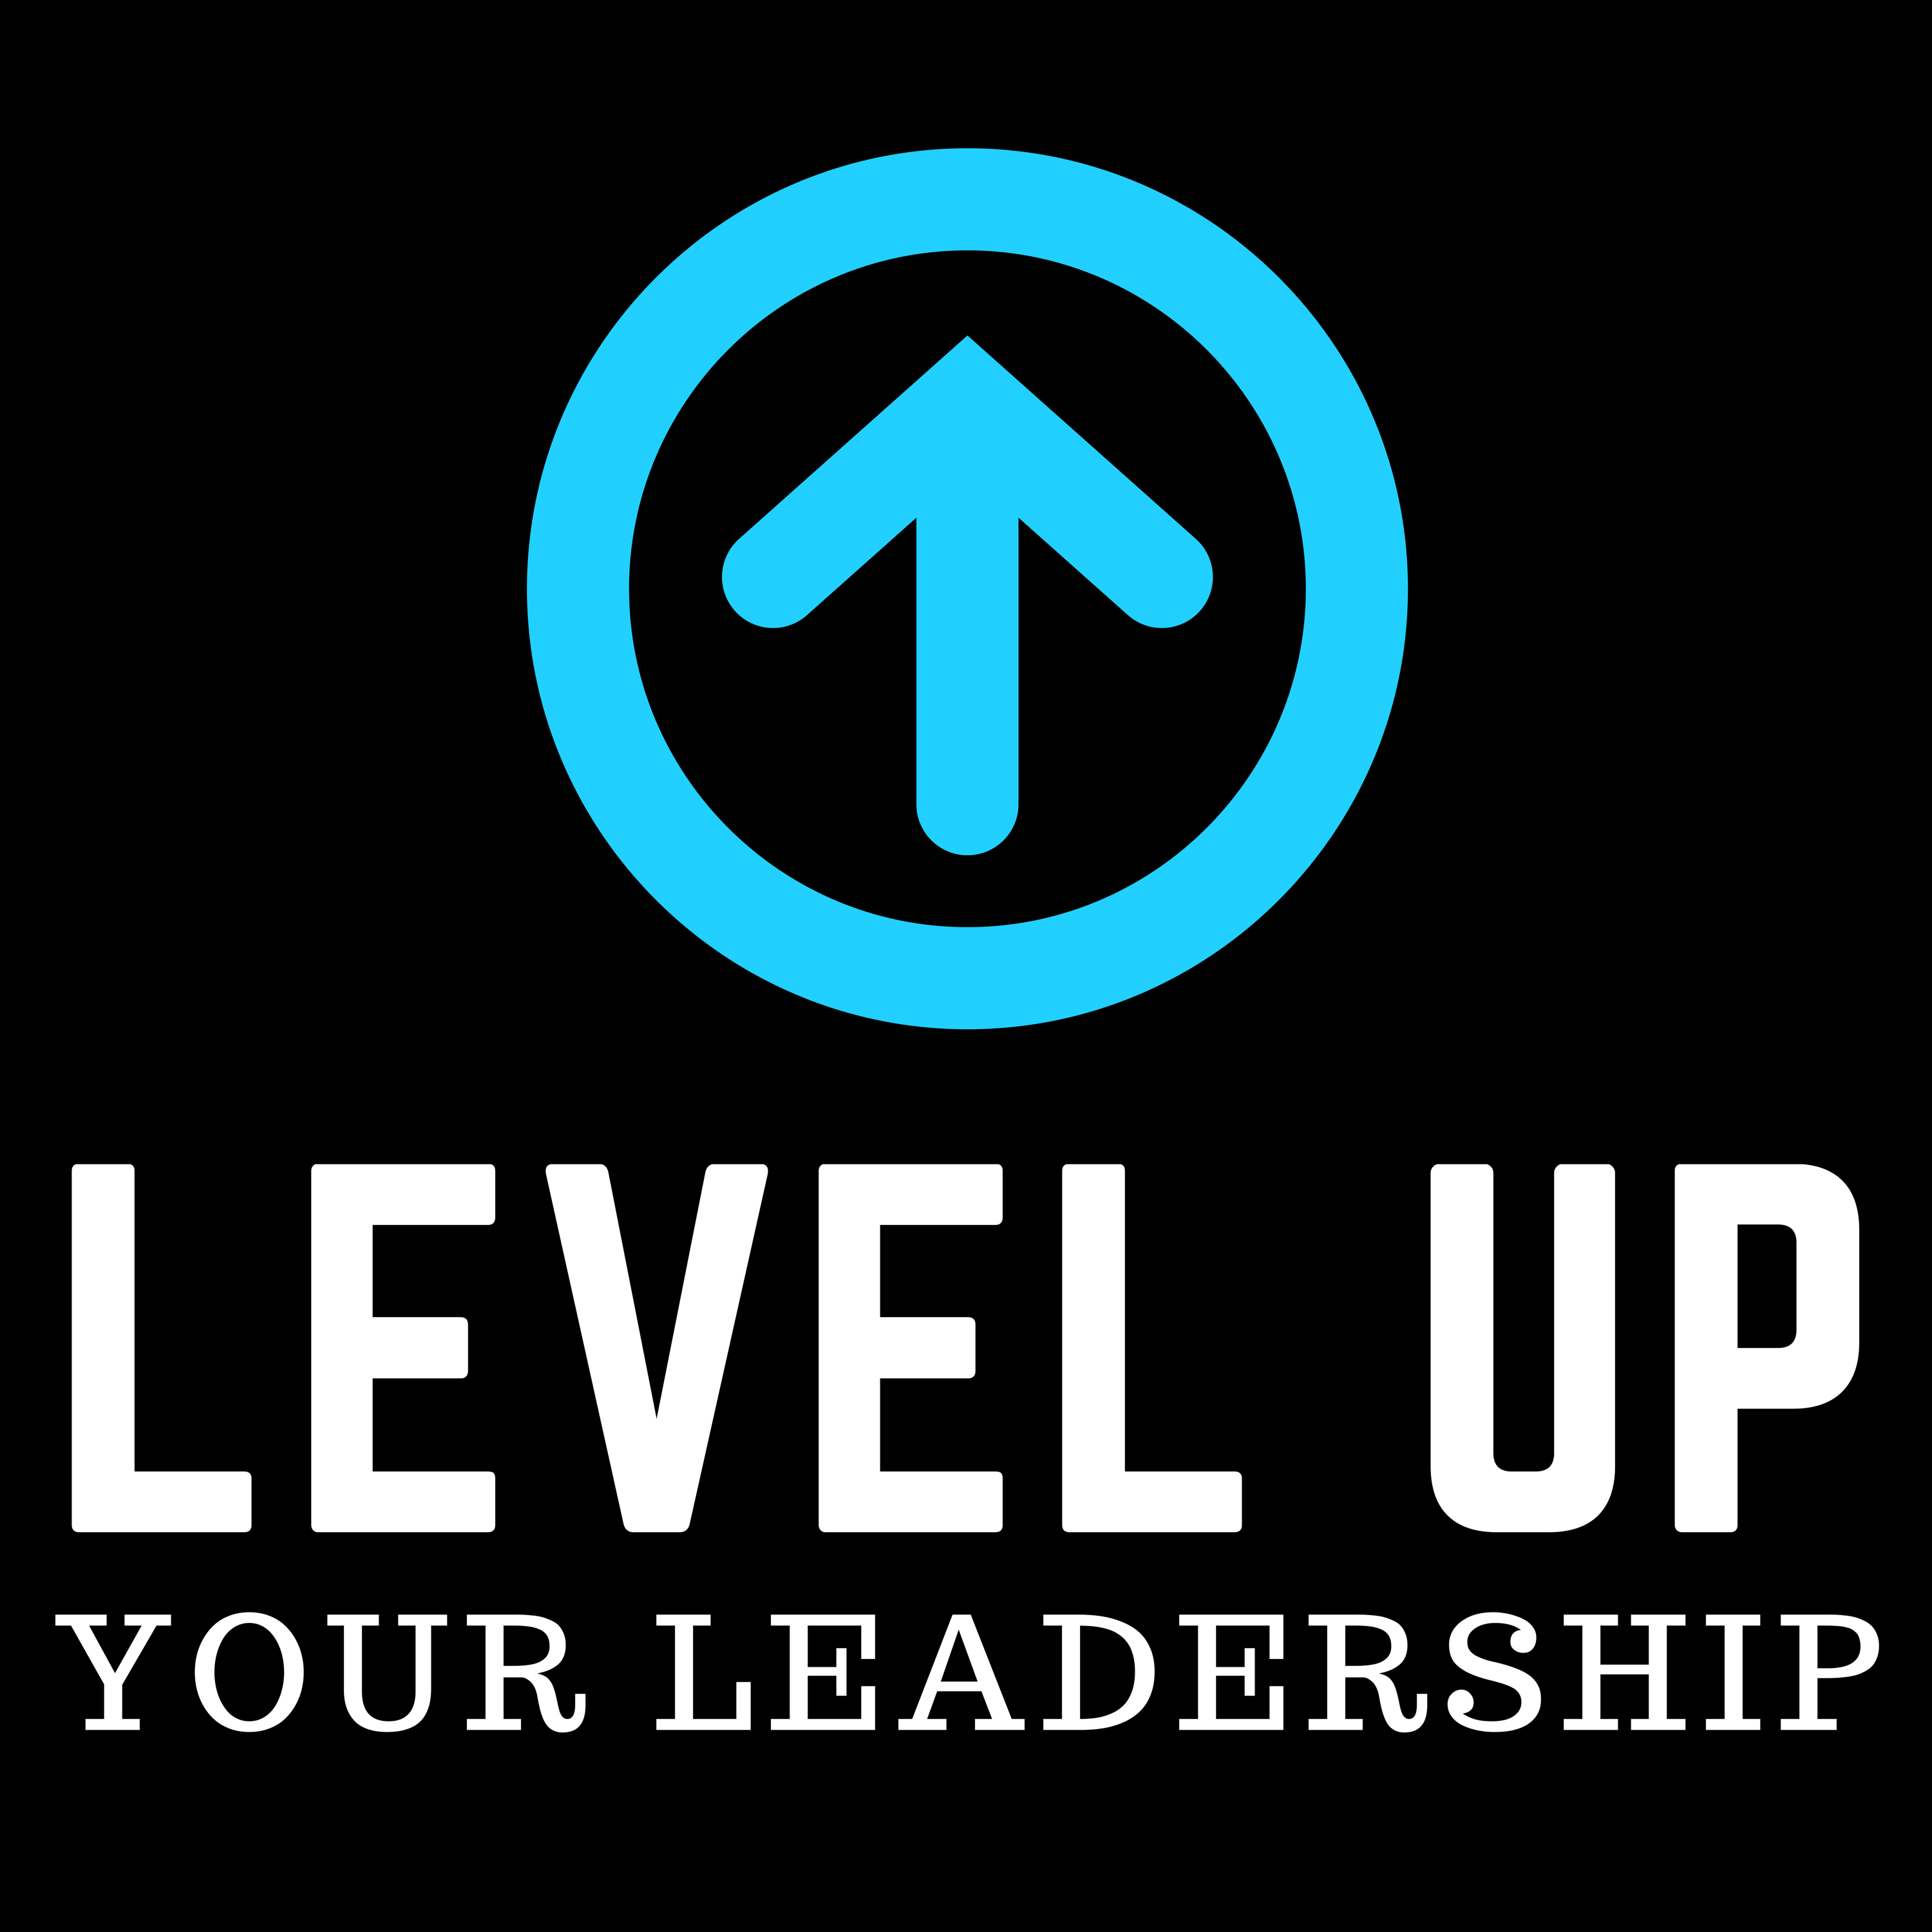 Level Up Your Leadership